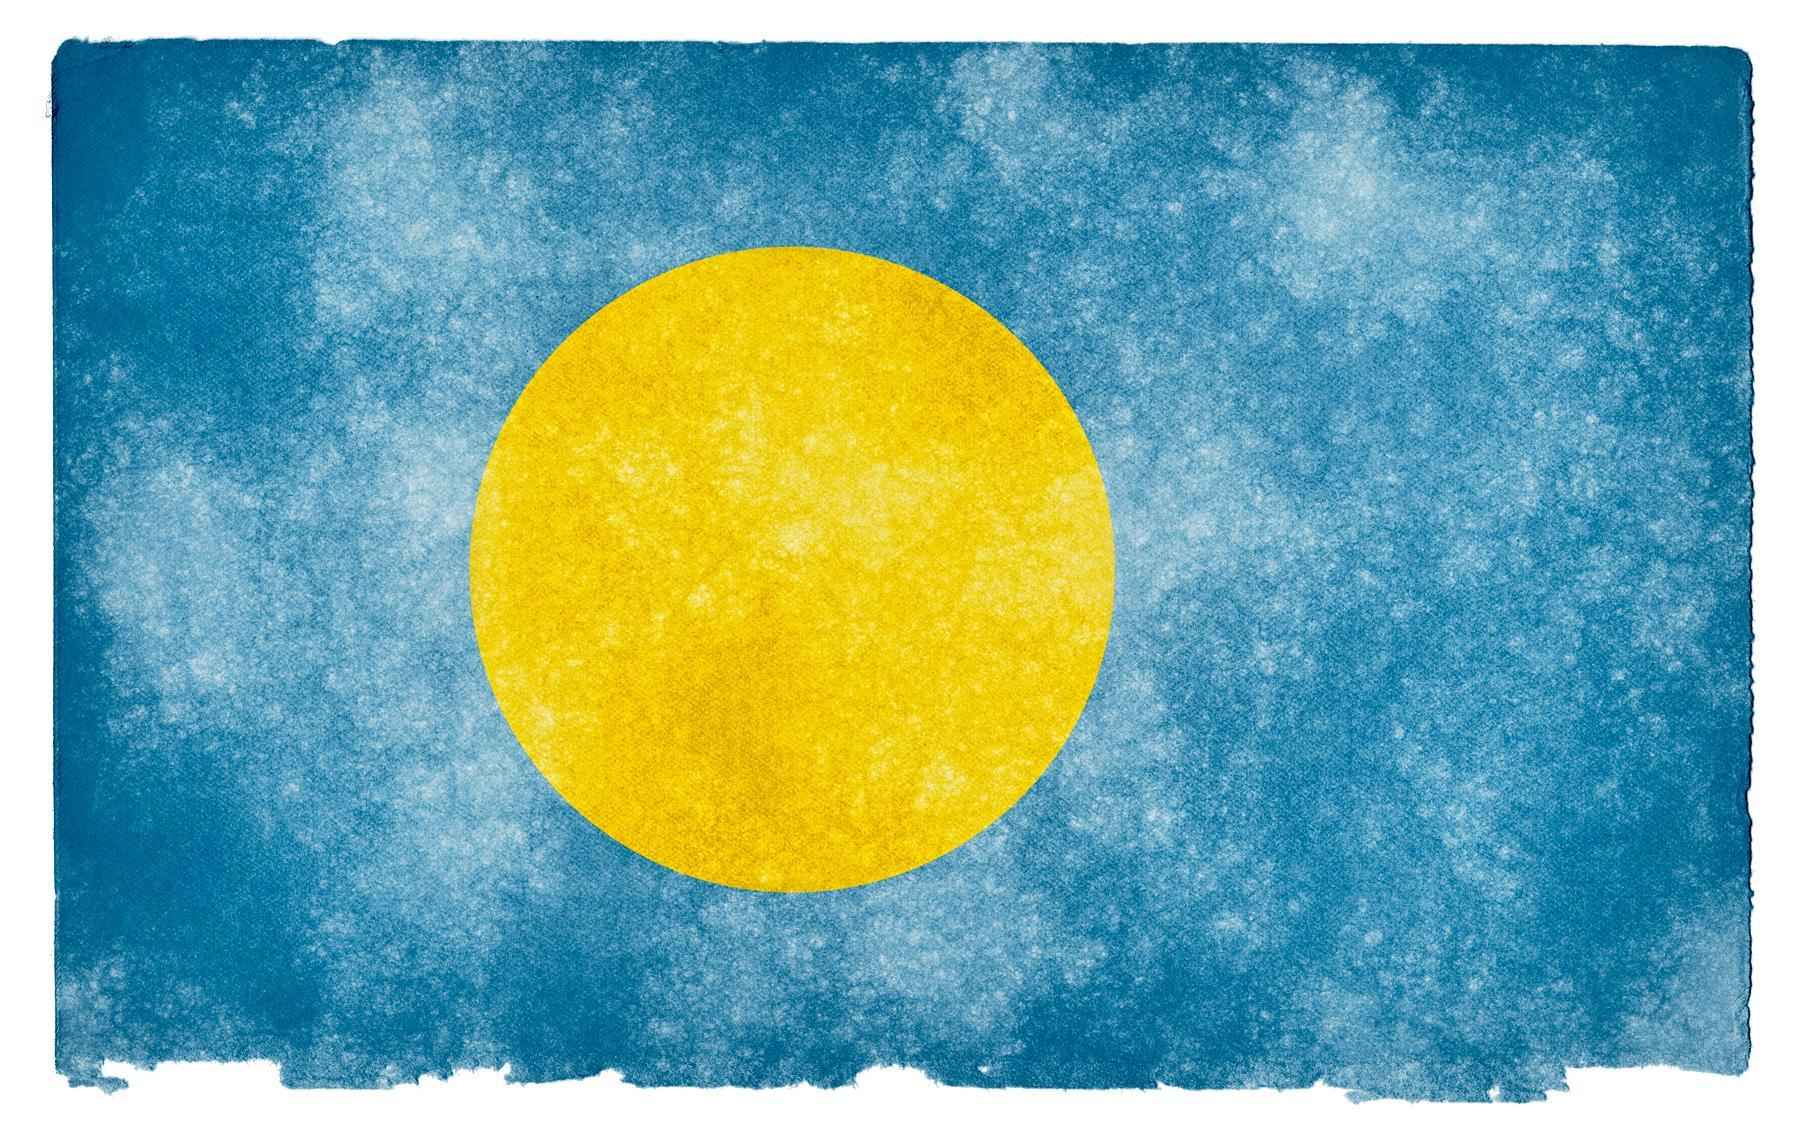 Free photo: Palau Grunge Flag